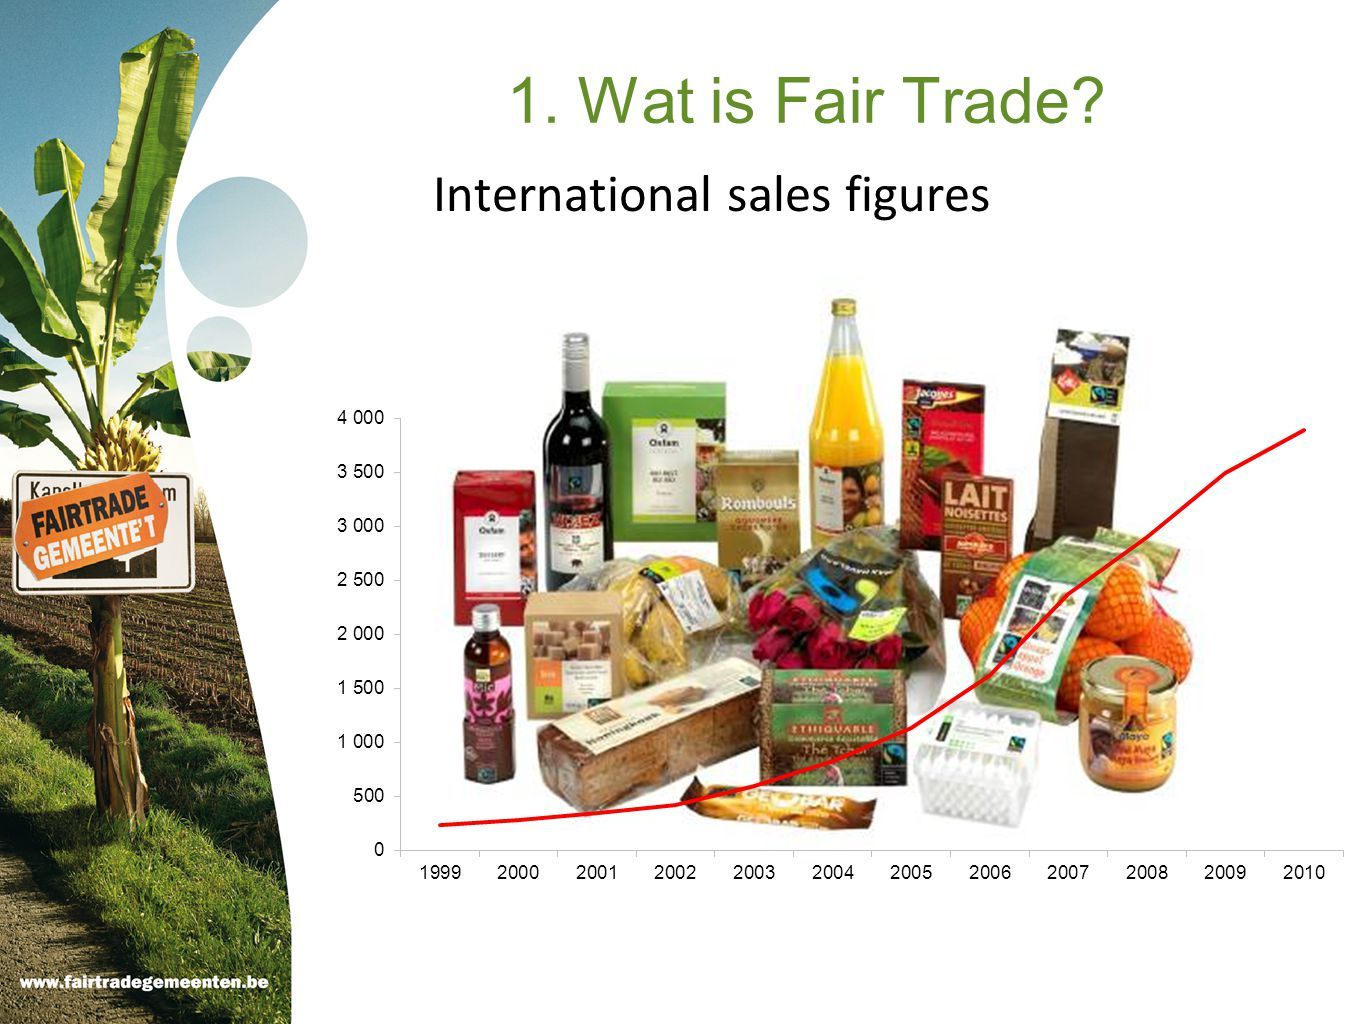 International sales figures 1. Wat is Fair Trade?